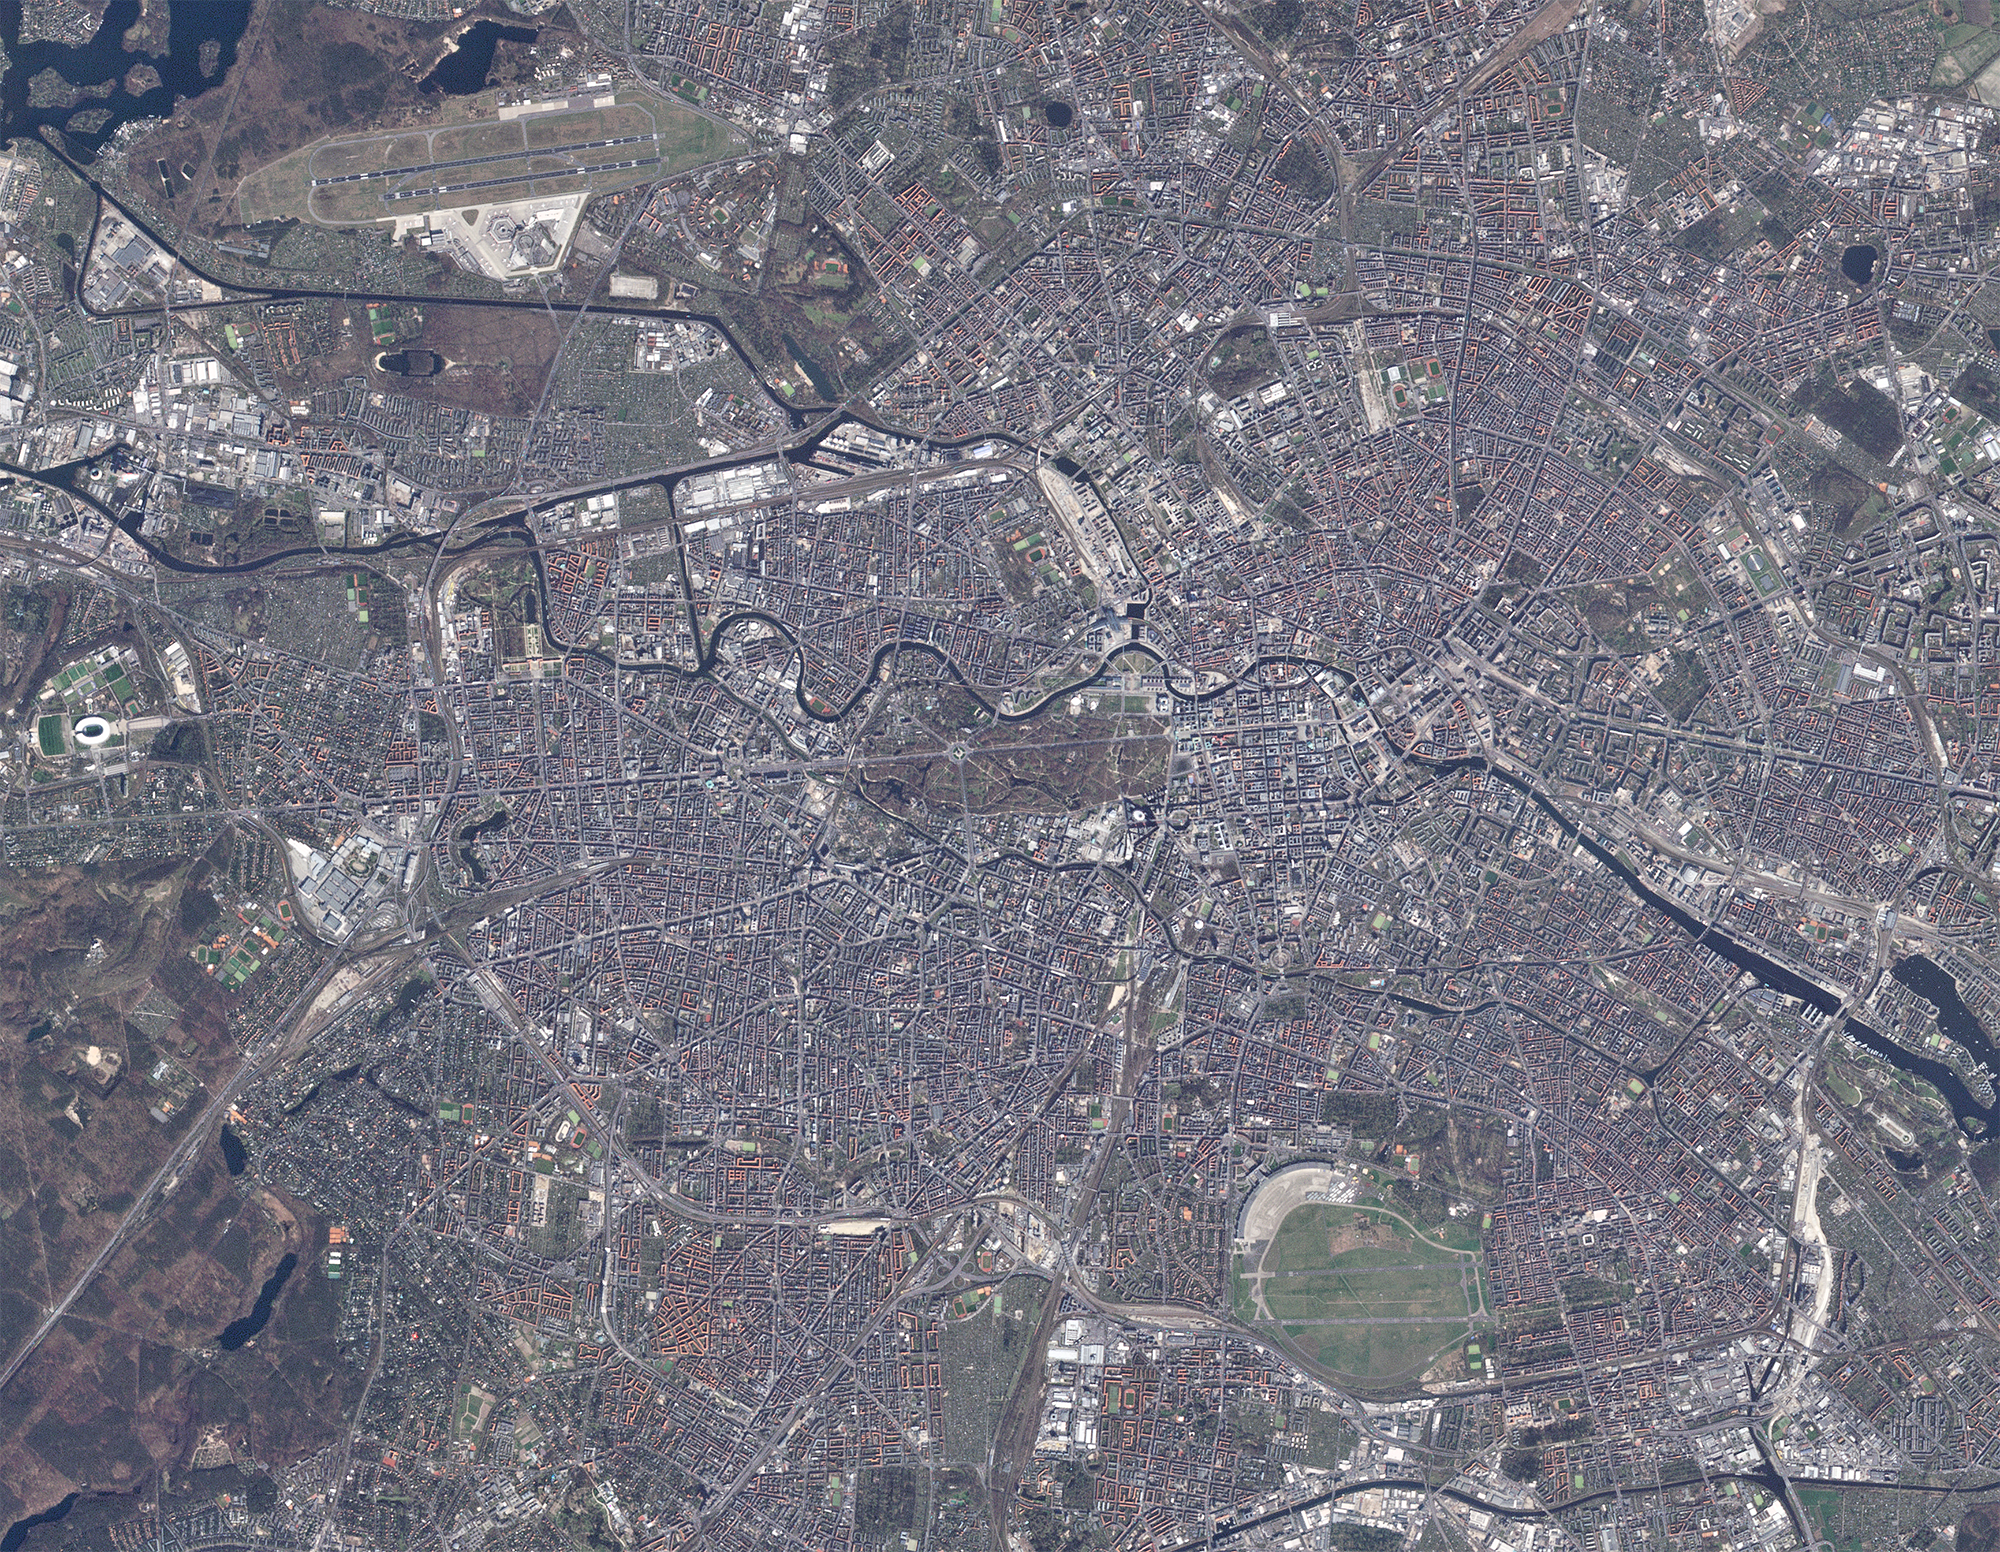 RapidEye last light image of Berlin, Germany. © 2020, Planet Labs Inc. All Rights Reserved.